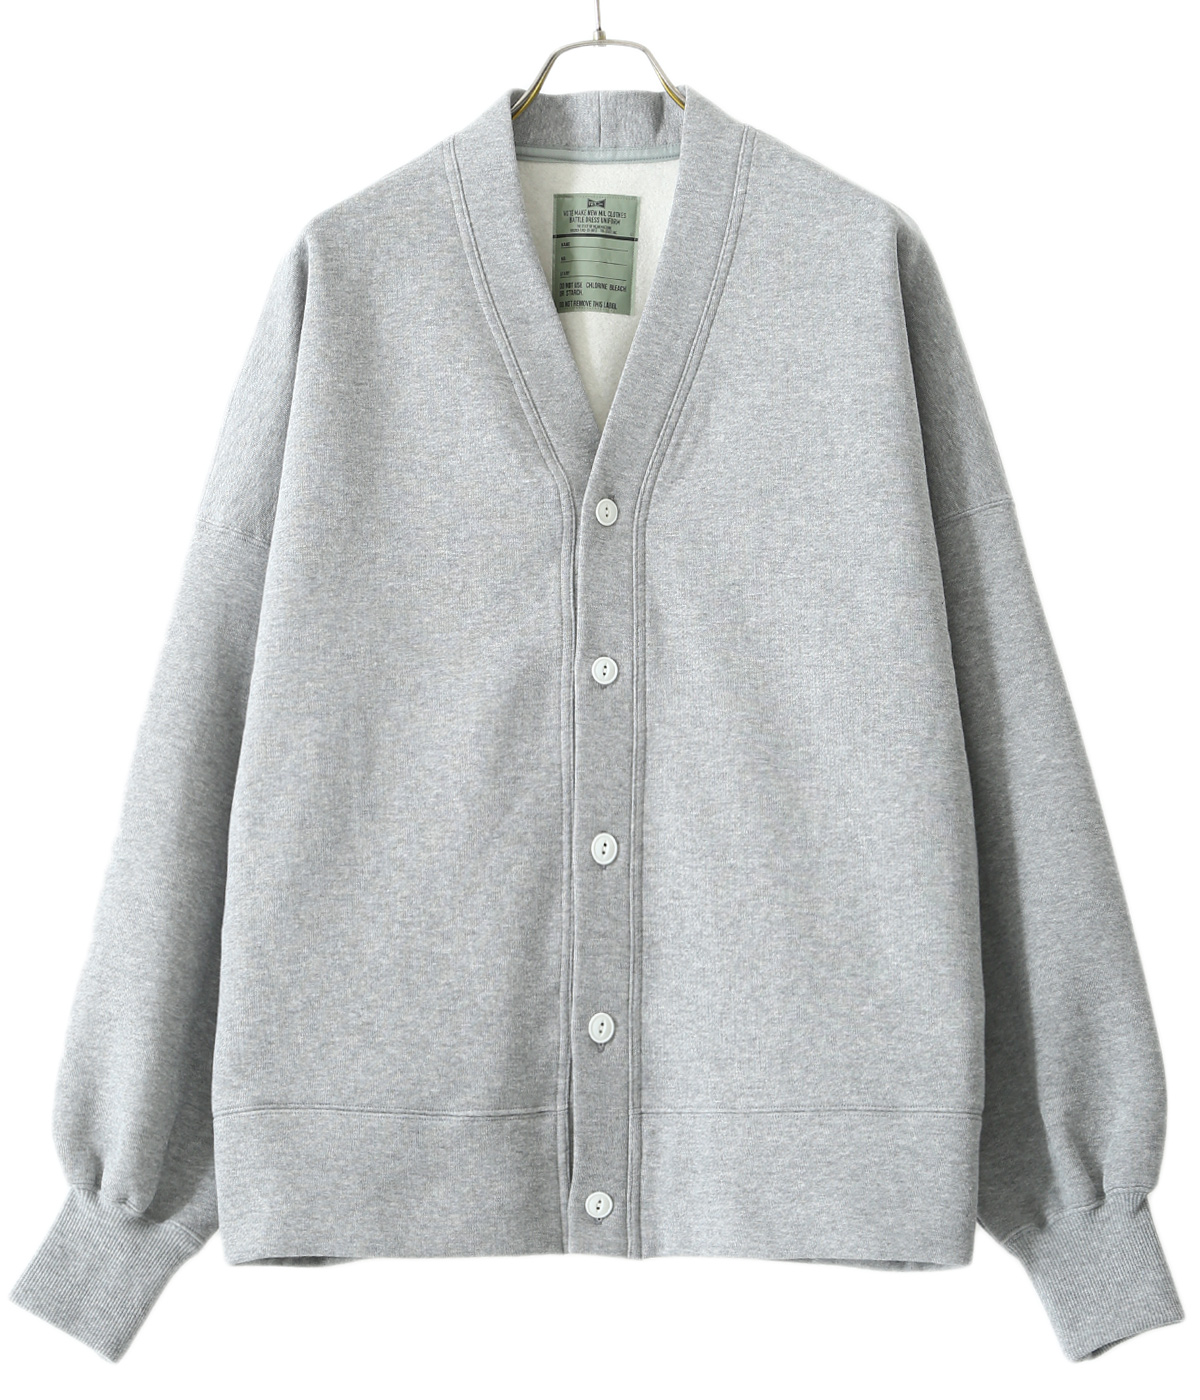 【予約】FAT SLEEVE CARDIGAN